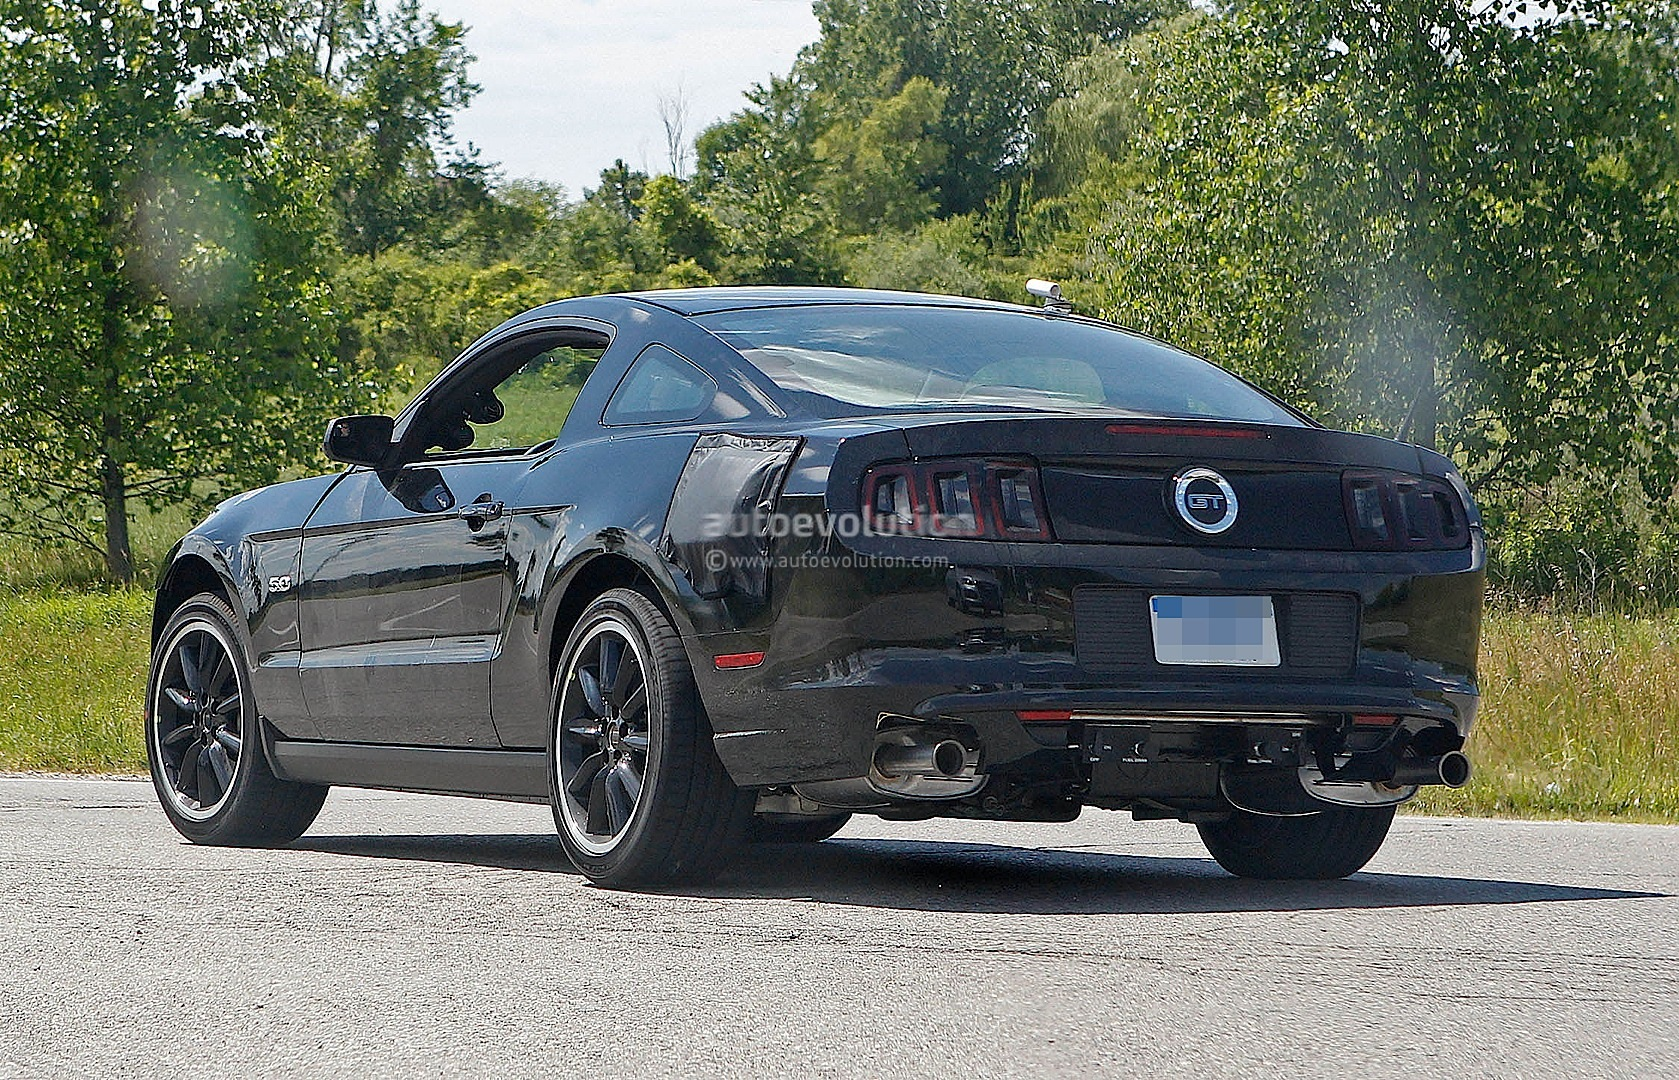 2015 Ford Mustang Test Mule Spy Shots #6/6